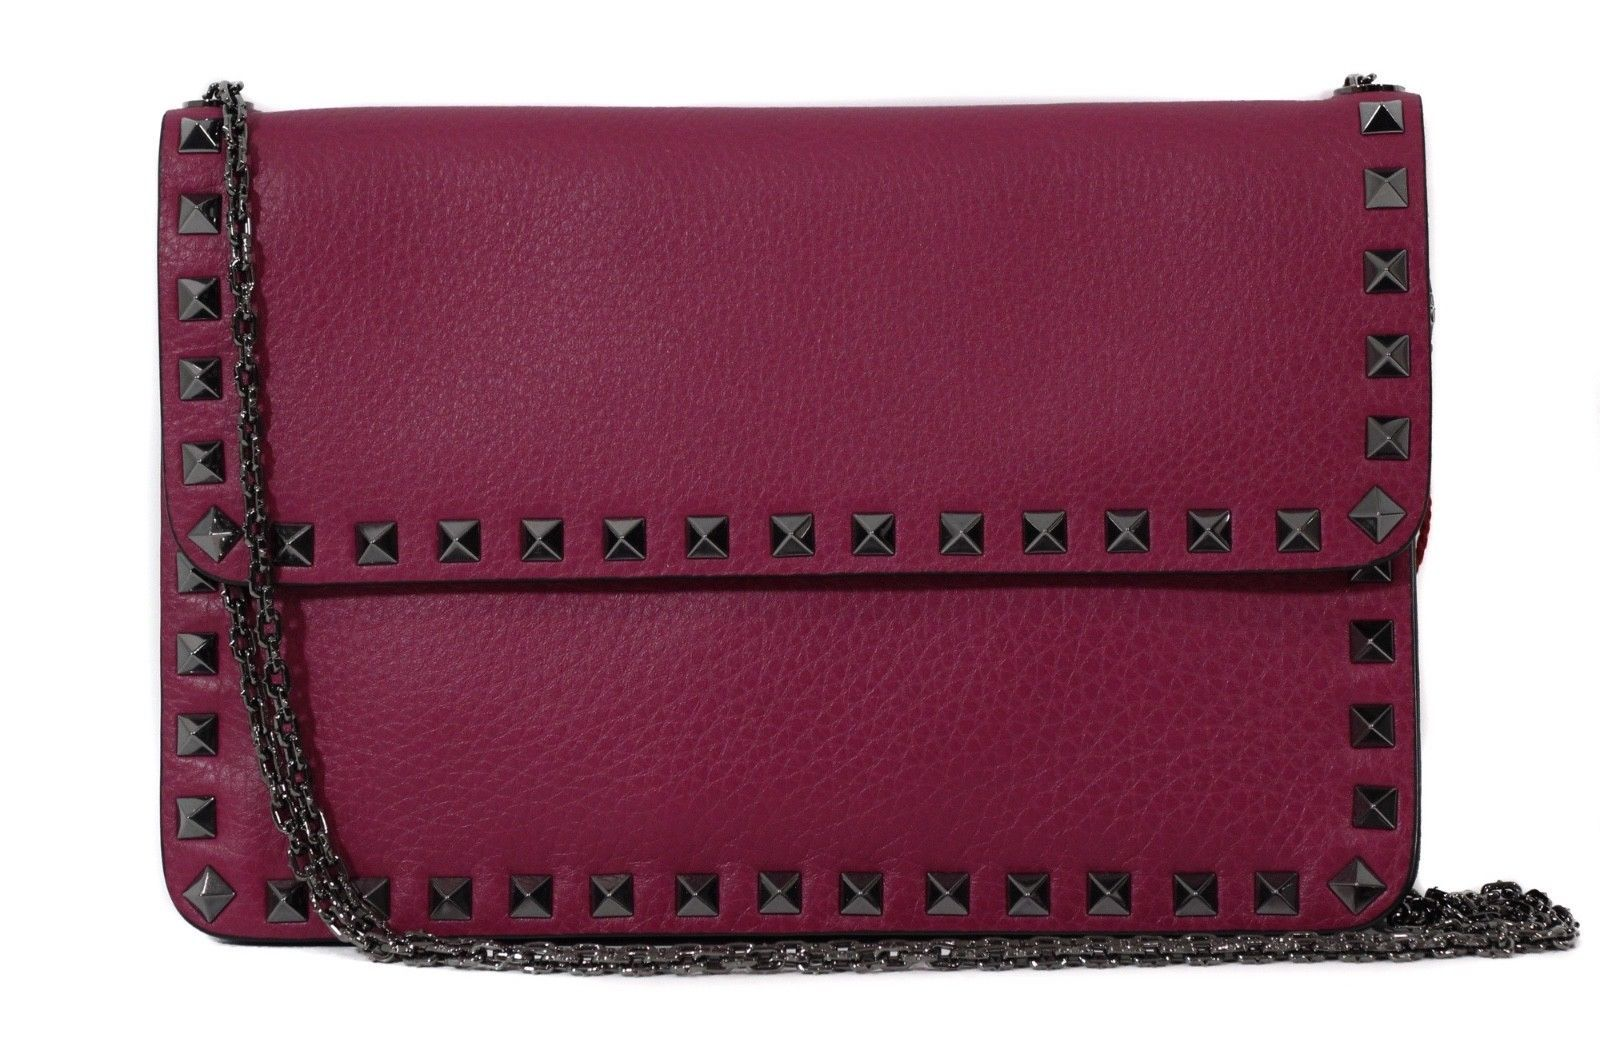 Primary image for NEW VALENTINO Garavani Rockstud Leather Clutch Crossbody Bag